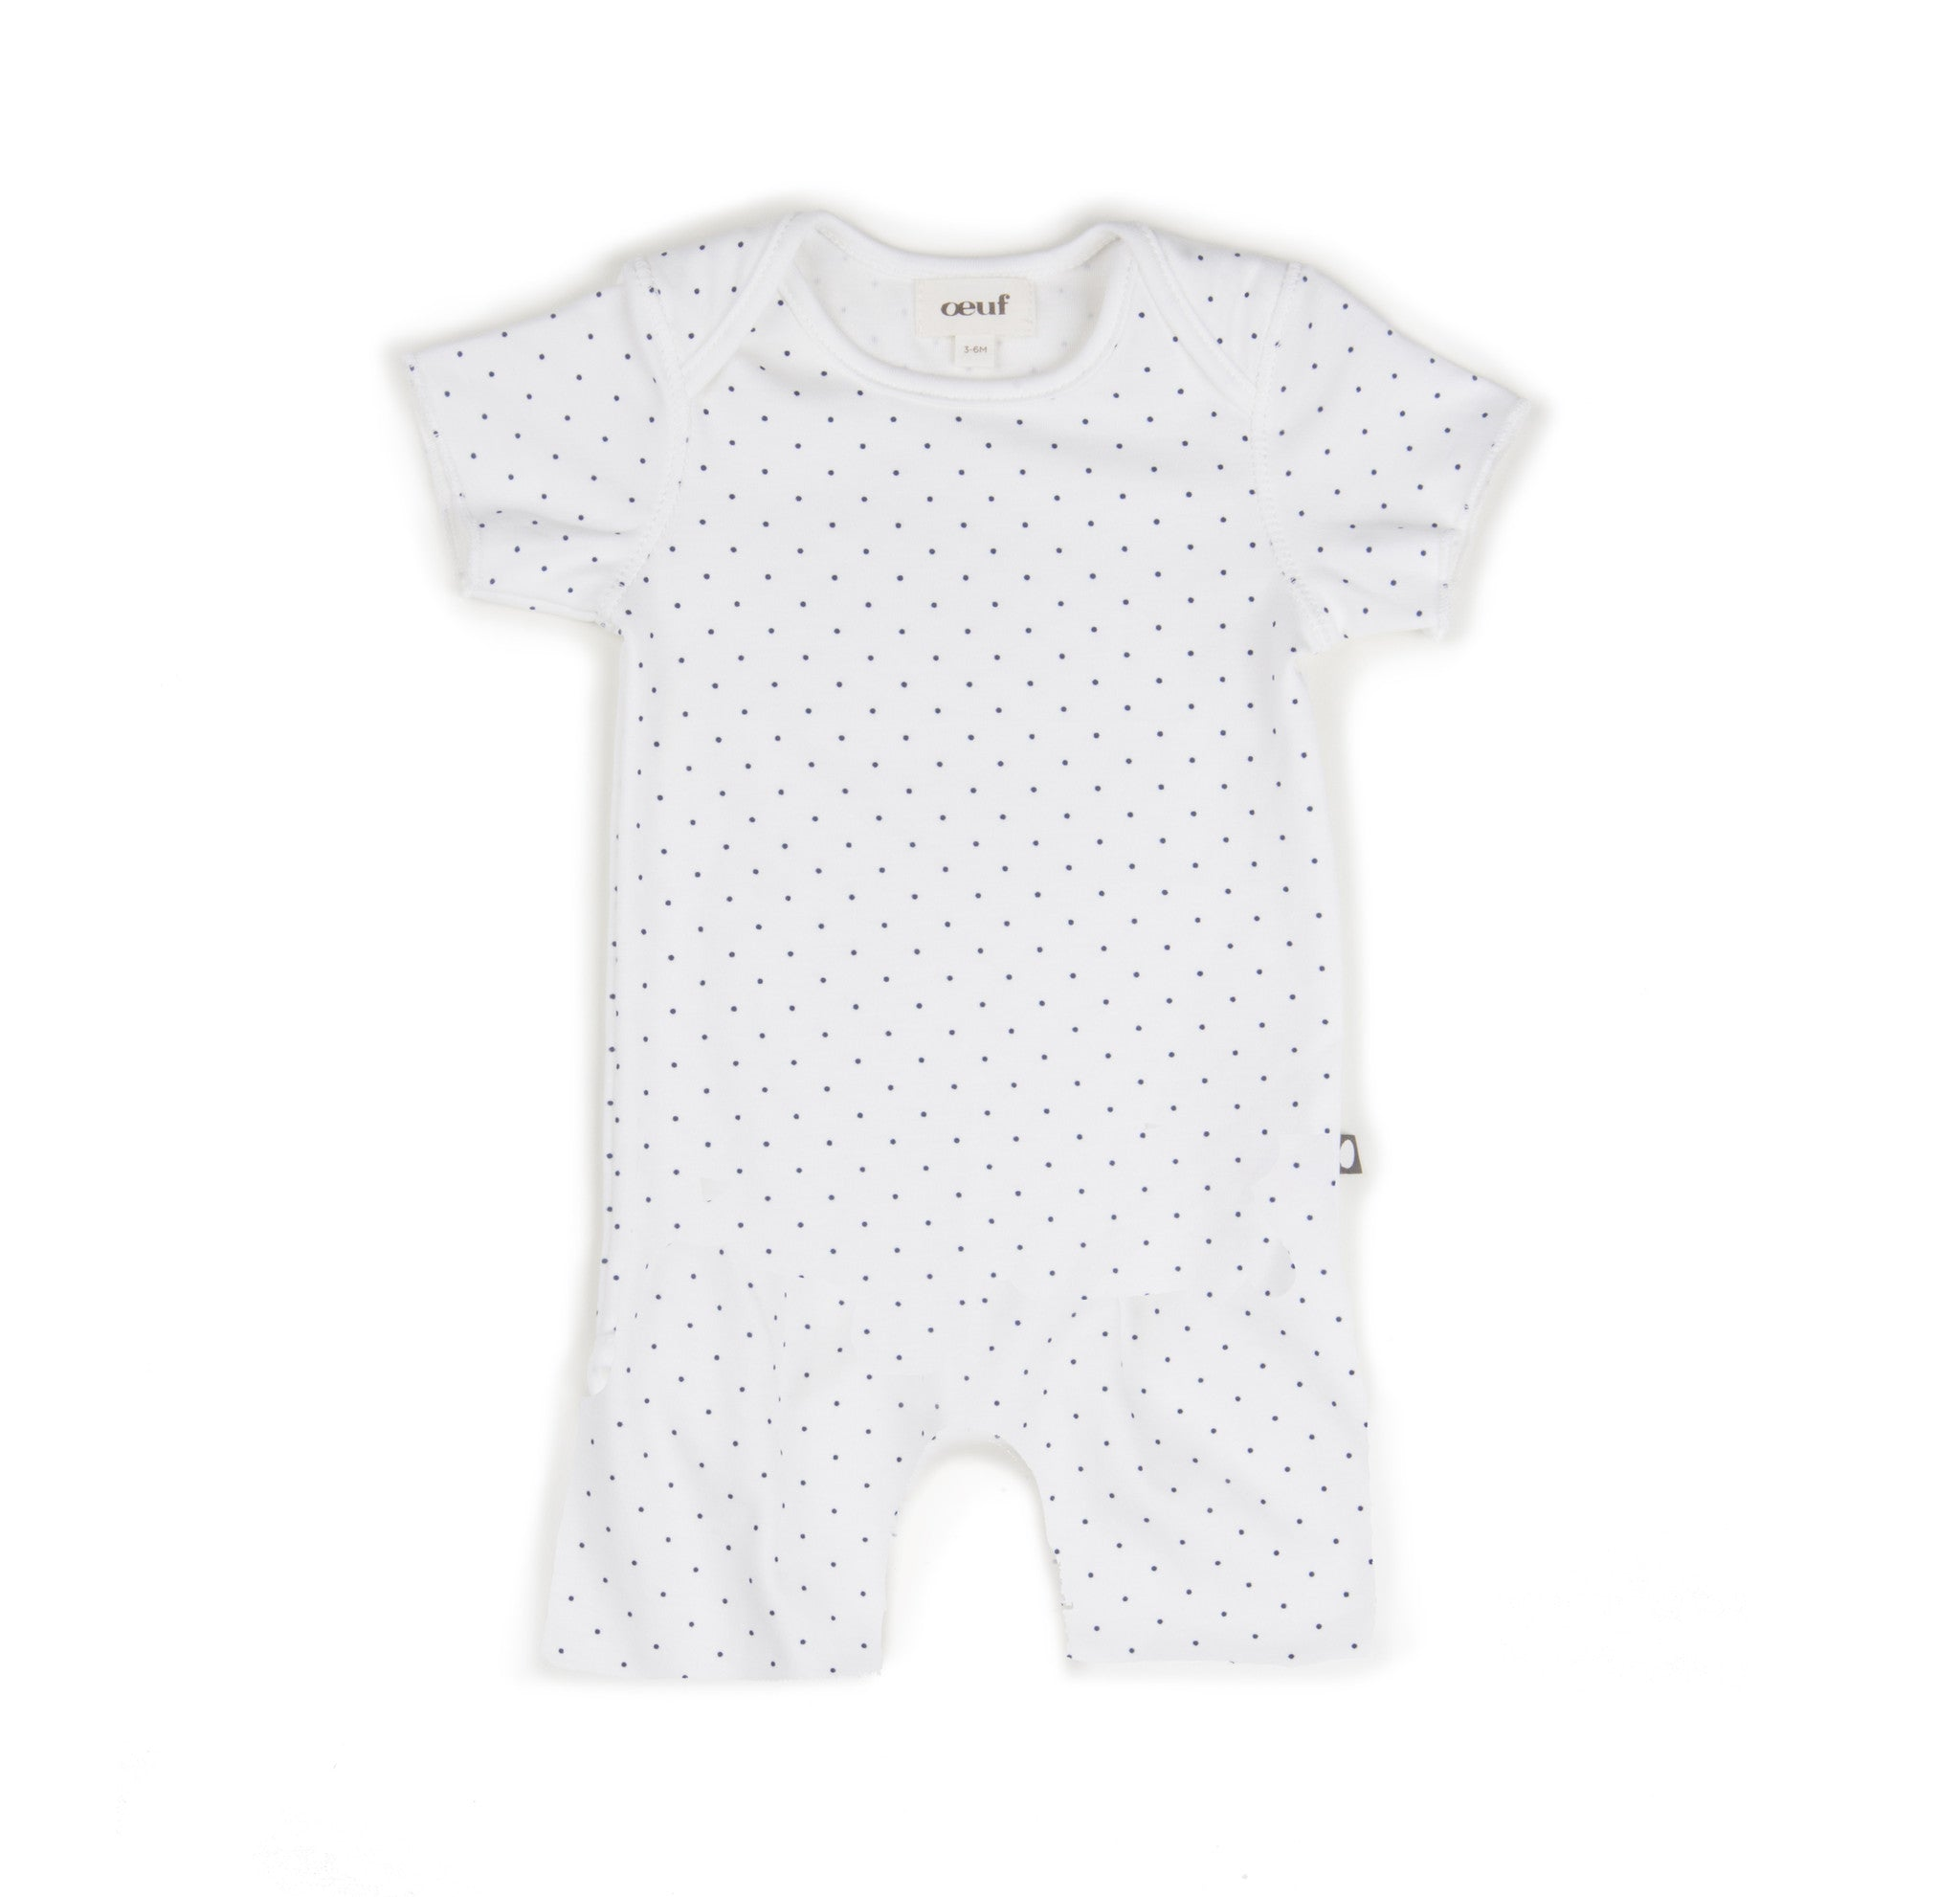 Oeuf White/Indigo Dots Short Romper - Ladida